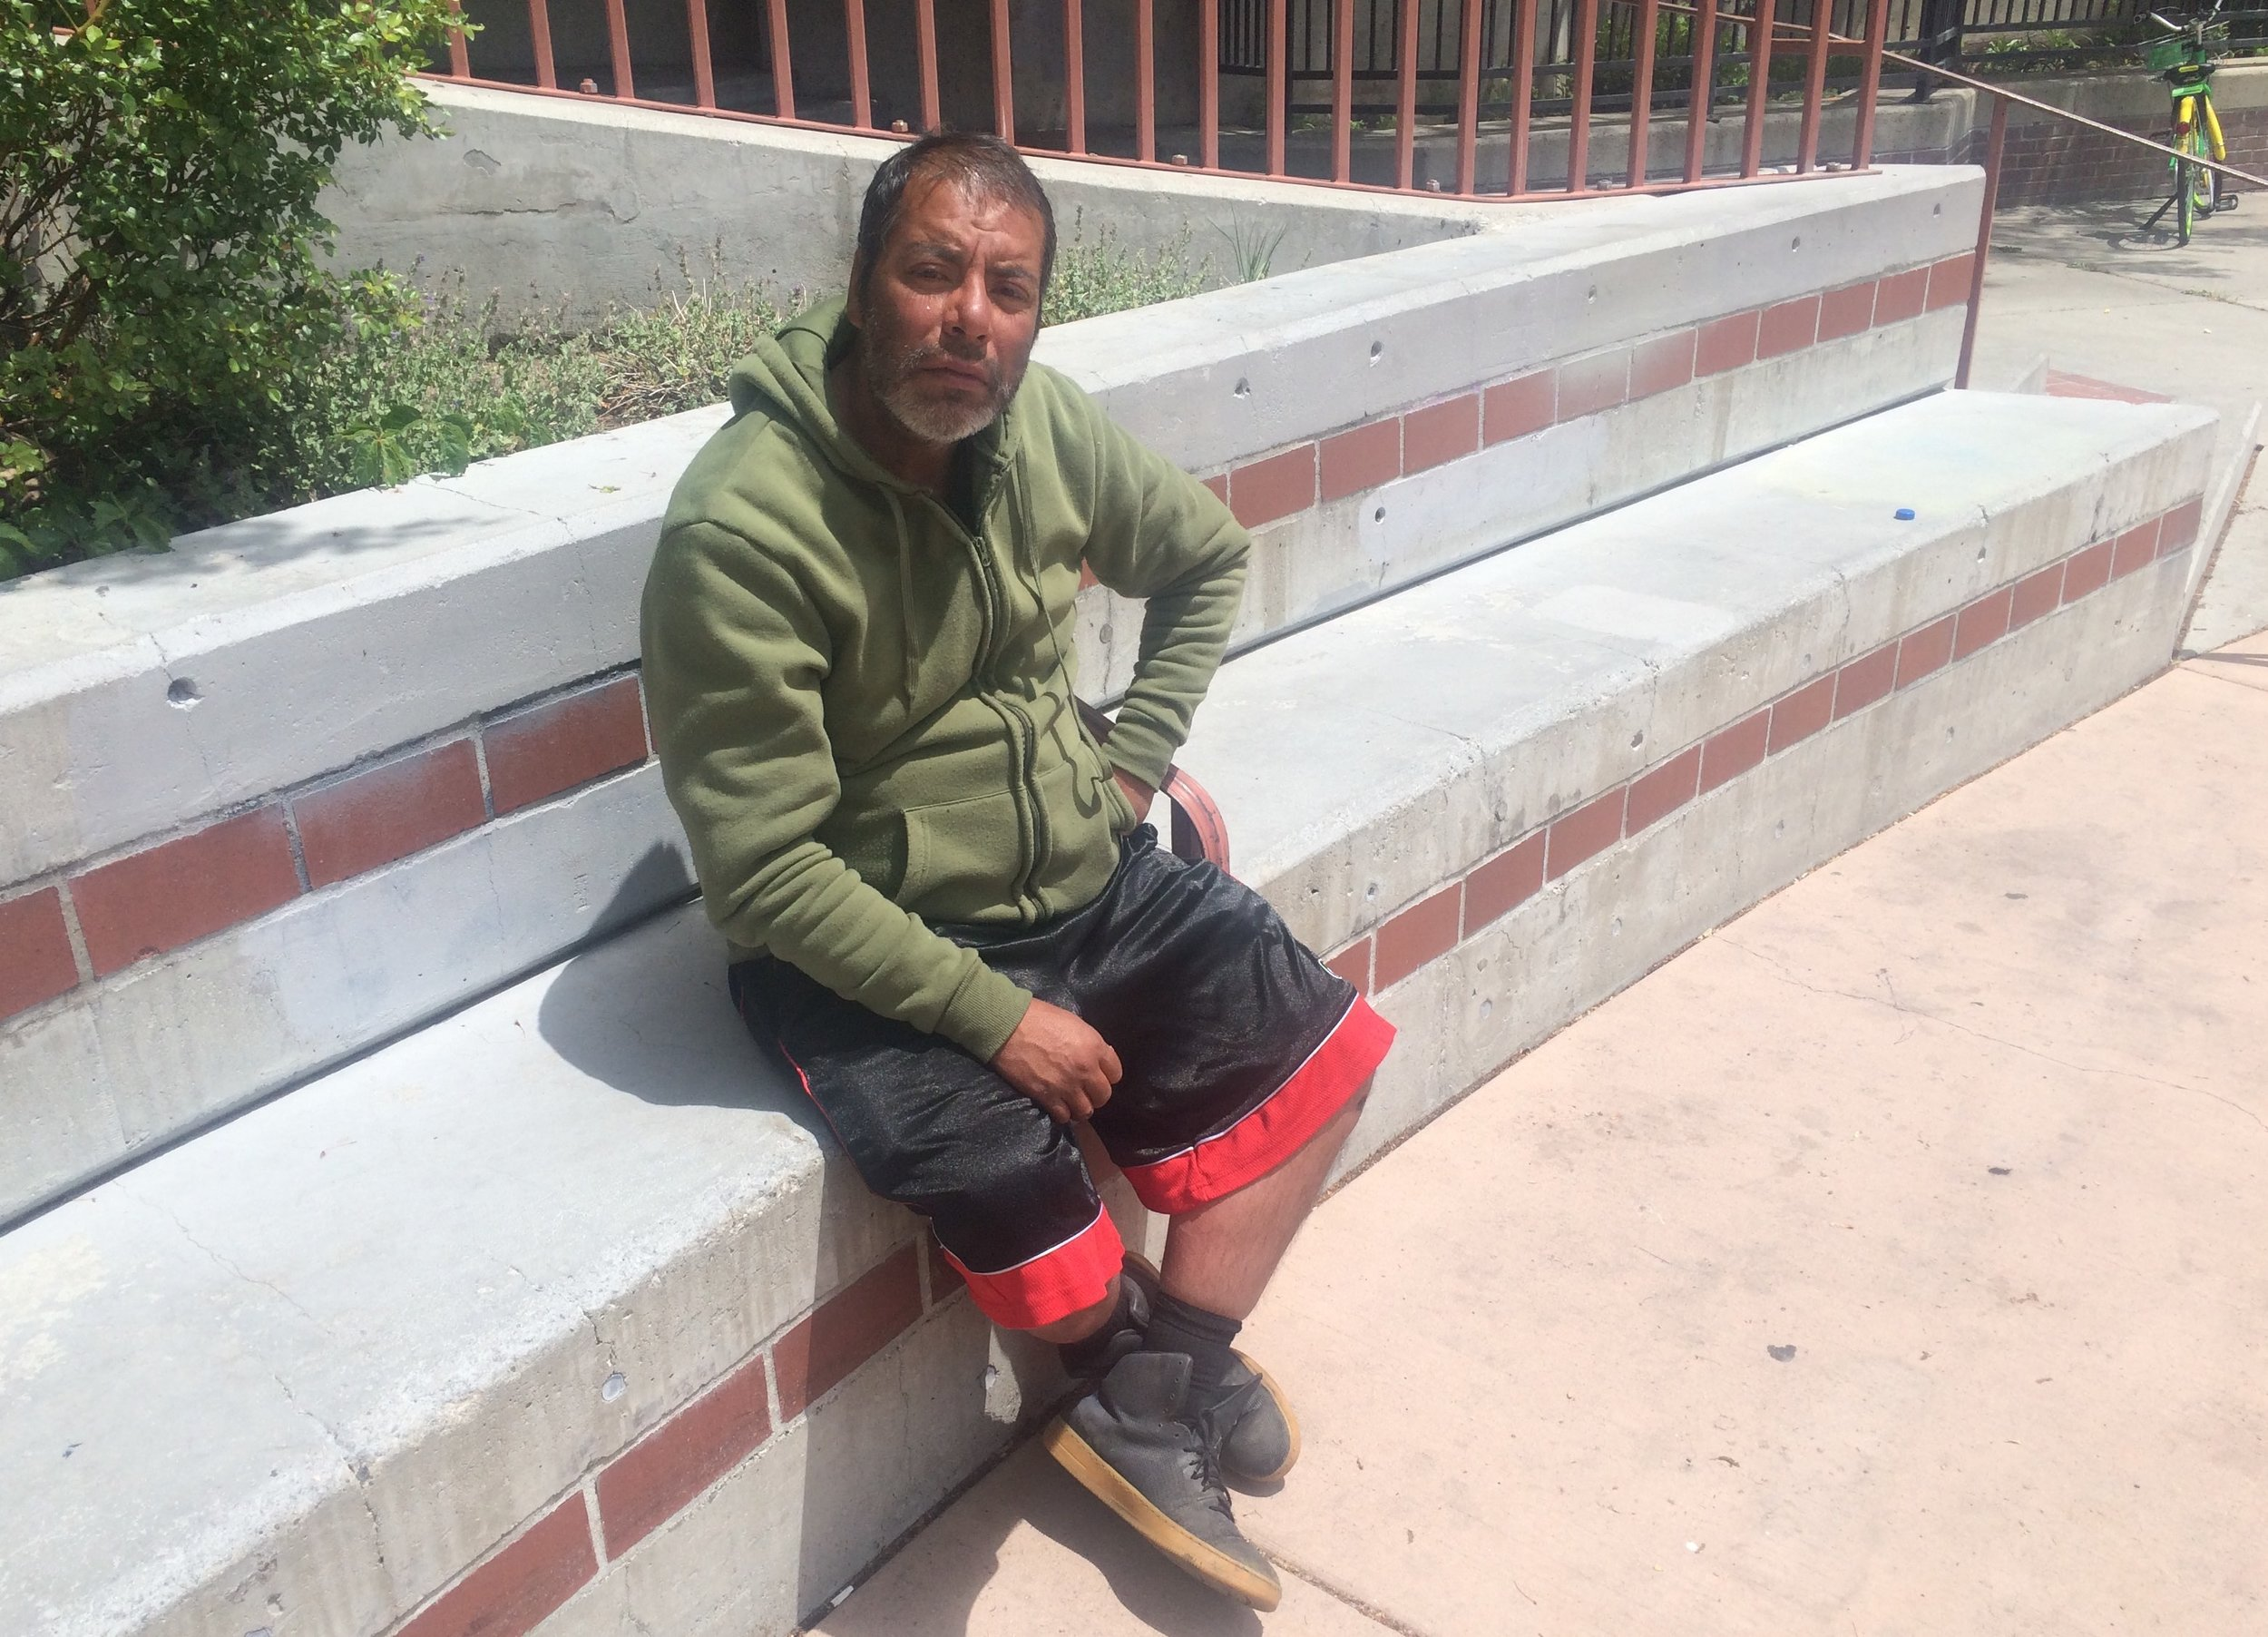 """When we met Manuel, 42, he was spending his day in downtown Reno, watching the river. """"I just mind my own business. I'm just a simple man. I don't have anything to hide, I pay my taxes, I go to church, I go to meetings,I'm trying to get sober. I just come down here to look at the water and see the people."""" Photo and Reporting by Prince Nesta for Our Town Reno."""